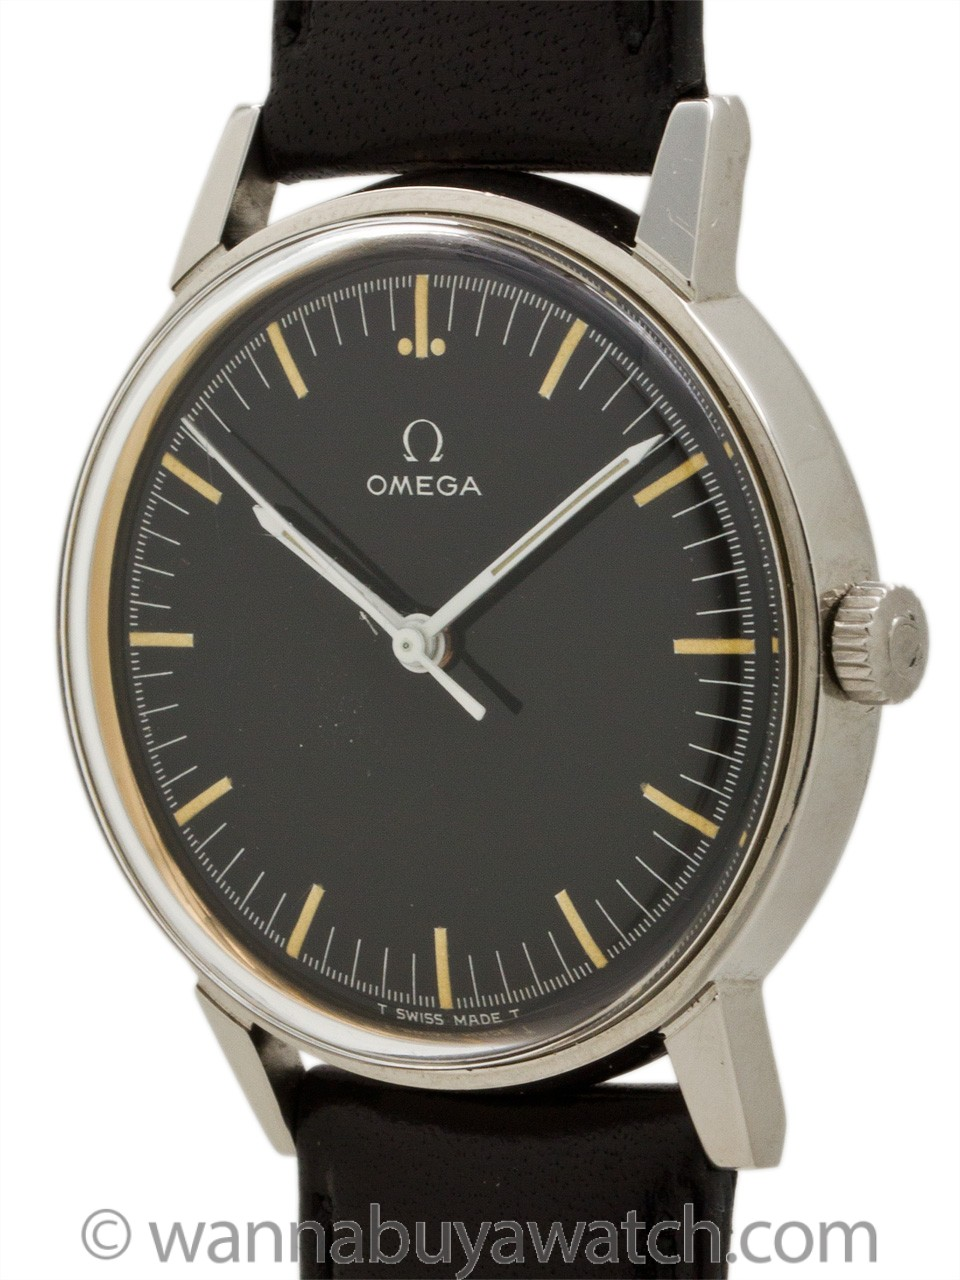 Omega Stainless ref 135.011 Post Moderne Design circa 1966